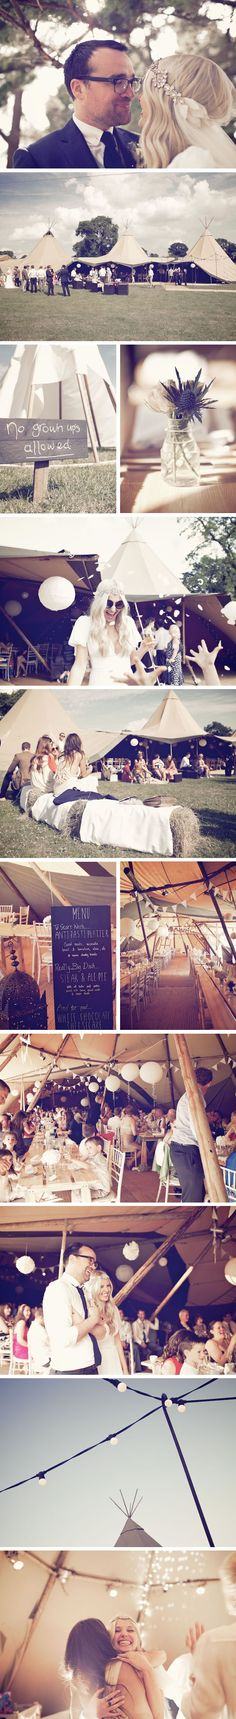 Wedding Tents & Teepees - Sarah & Kevin | PapaKåta this is from standlow farm.